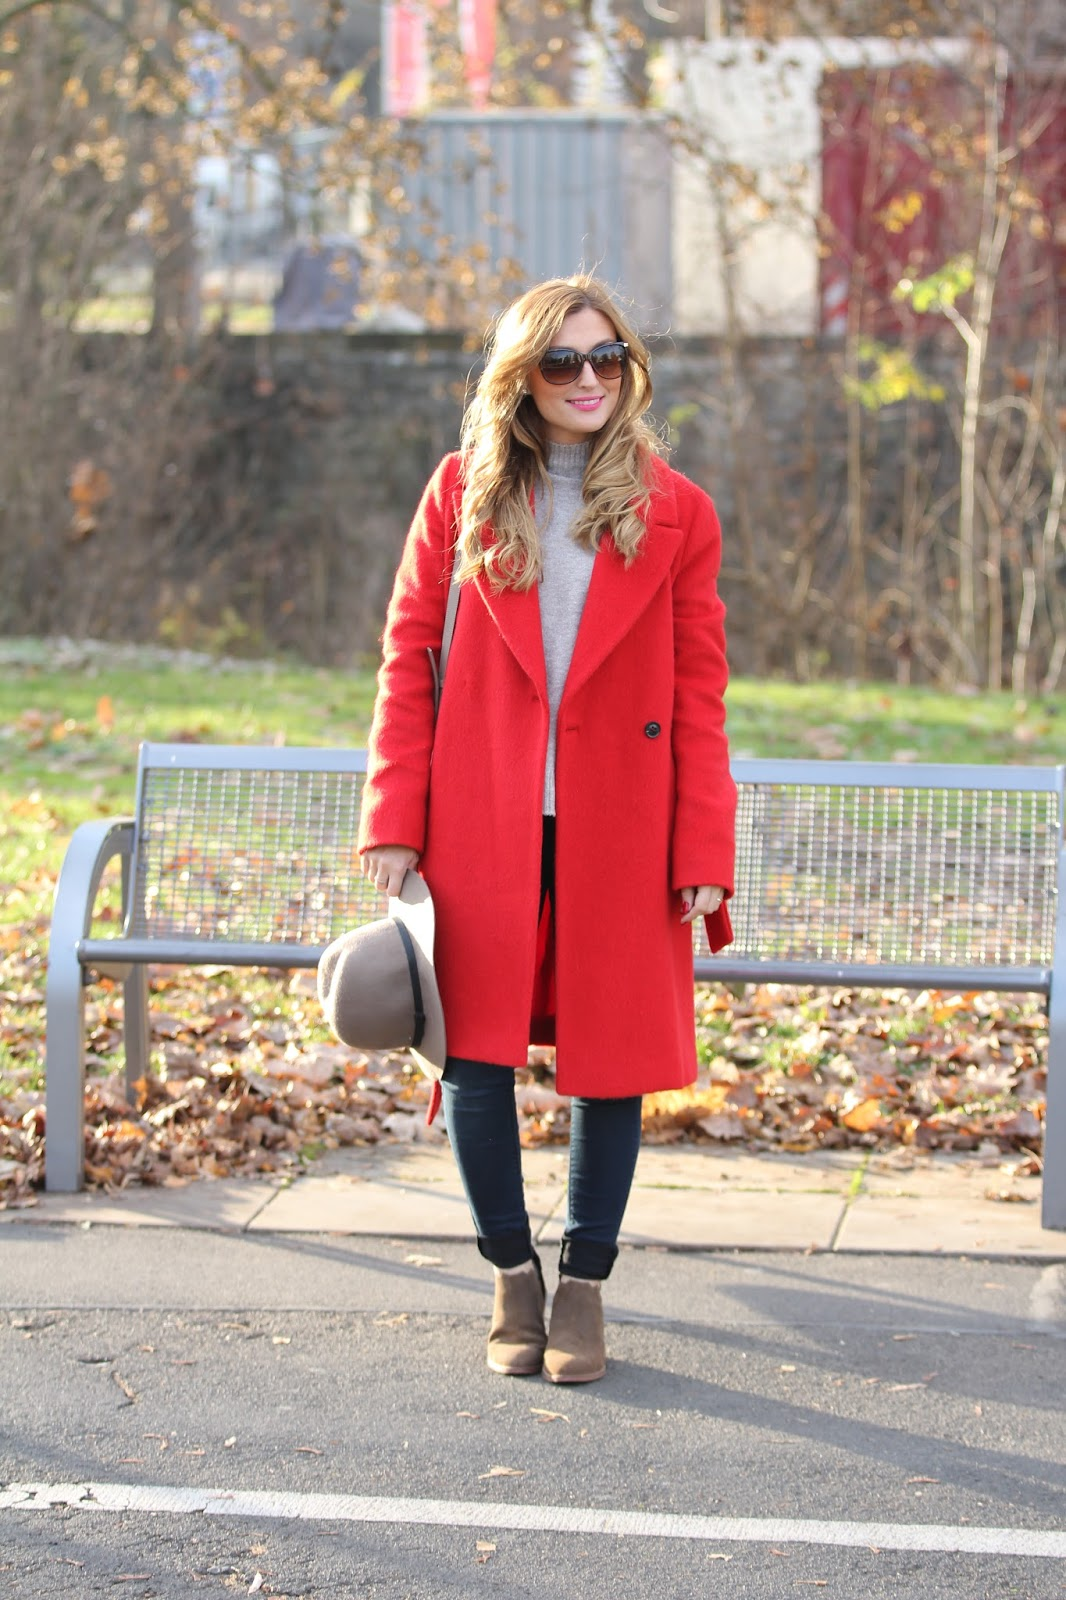 Roter-Taifun-Mantel-Gerry-weber-schuhe-Blogger-Casual- Streetstyle-look